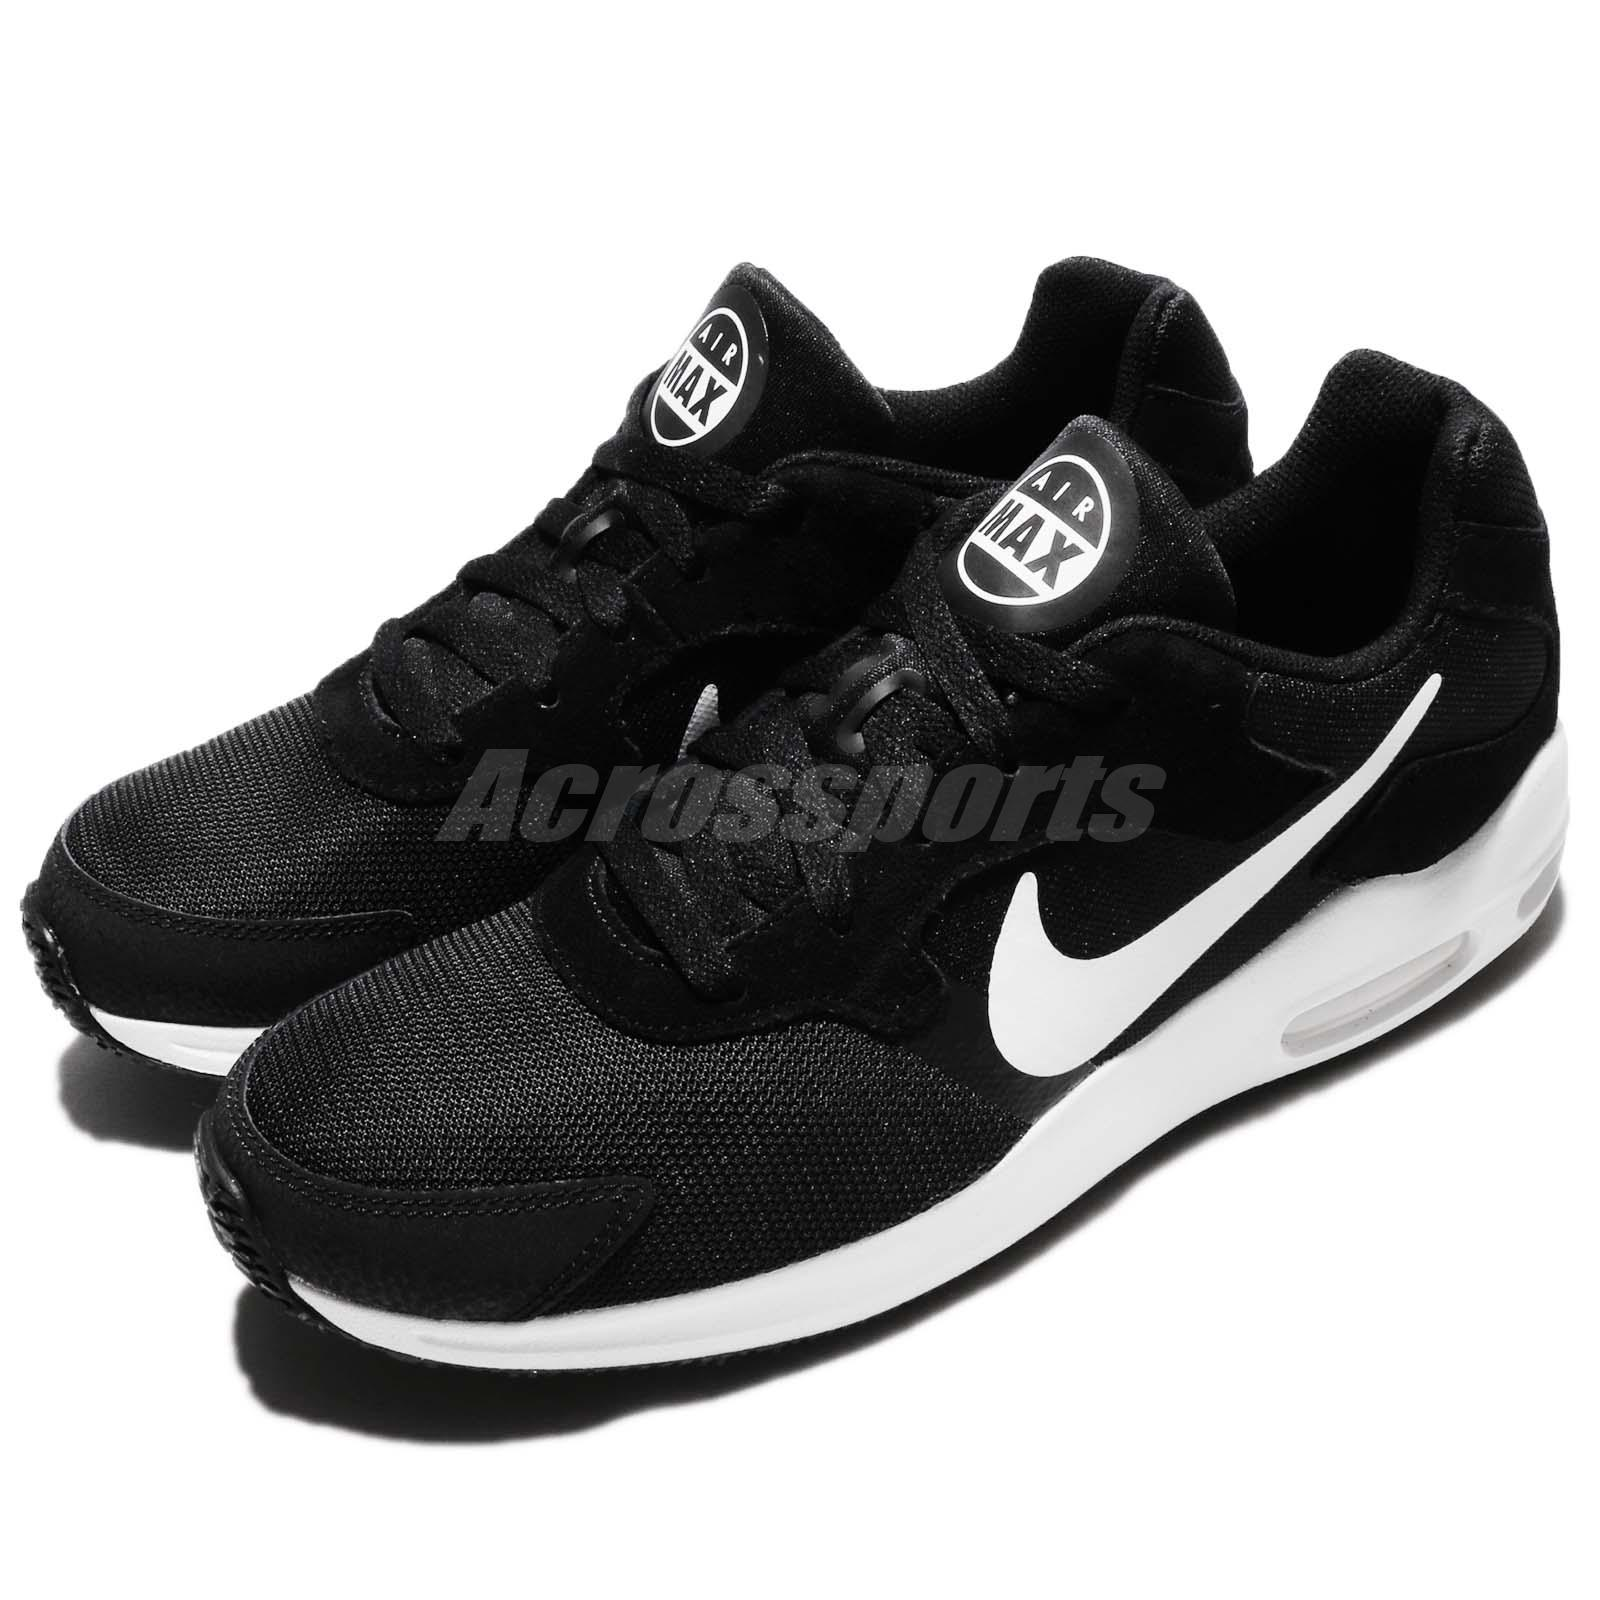 buy online d5044 72665 Details about Nike Air Max Guile Black White Men Running Shoes Sneakers  Trainers 916768-004